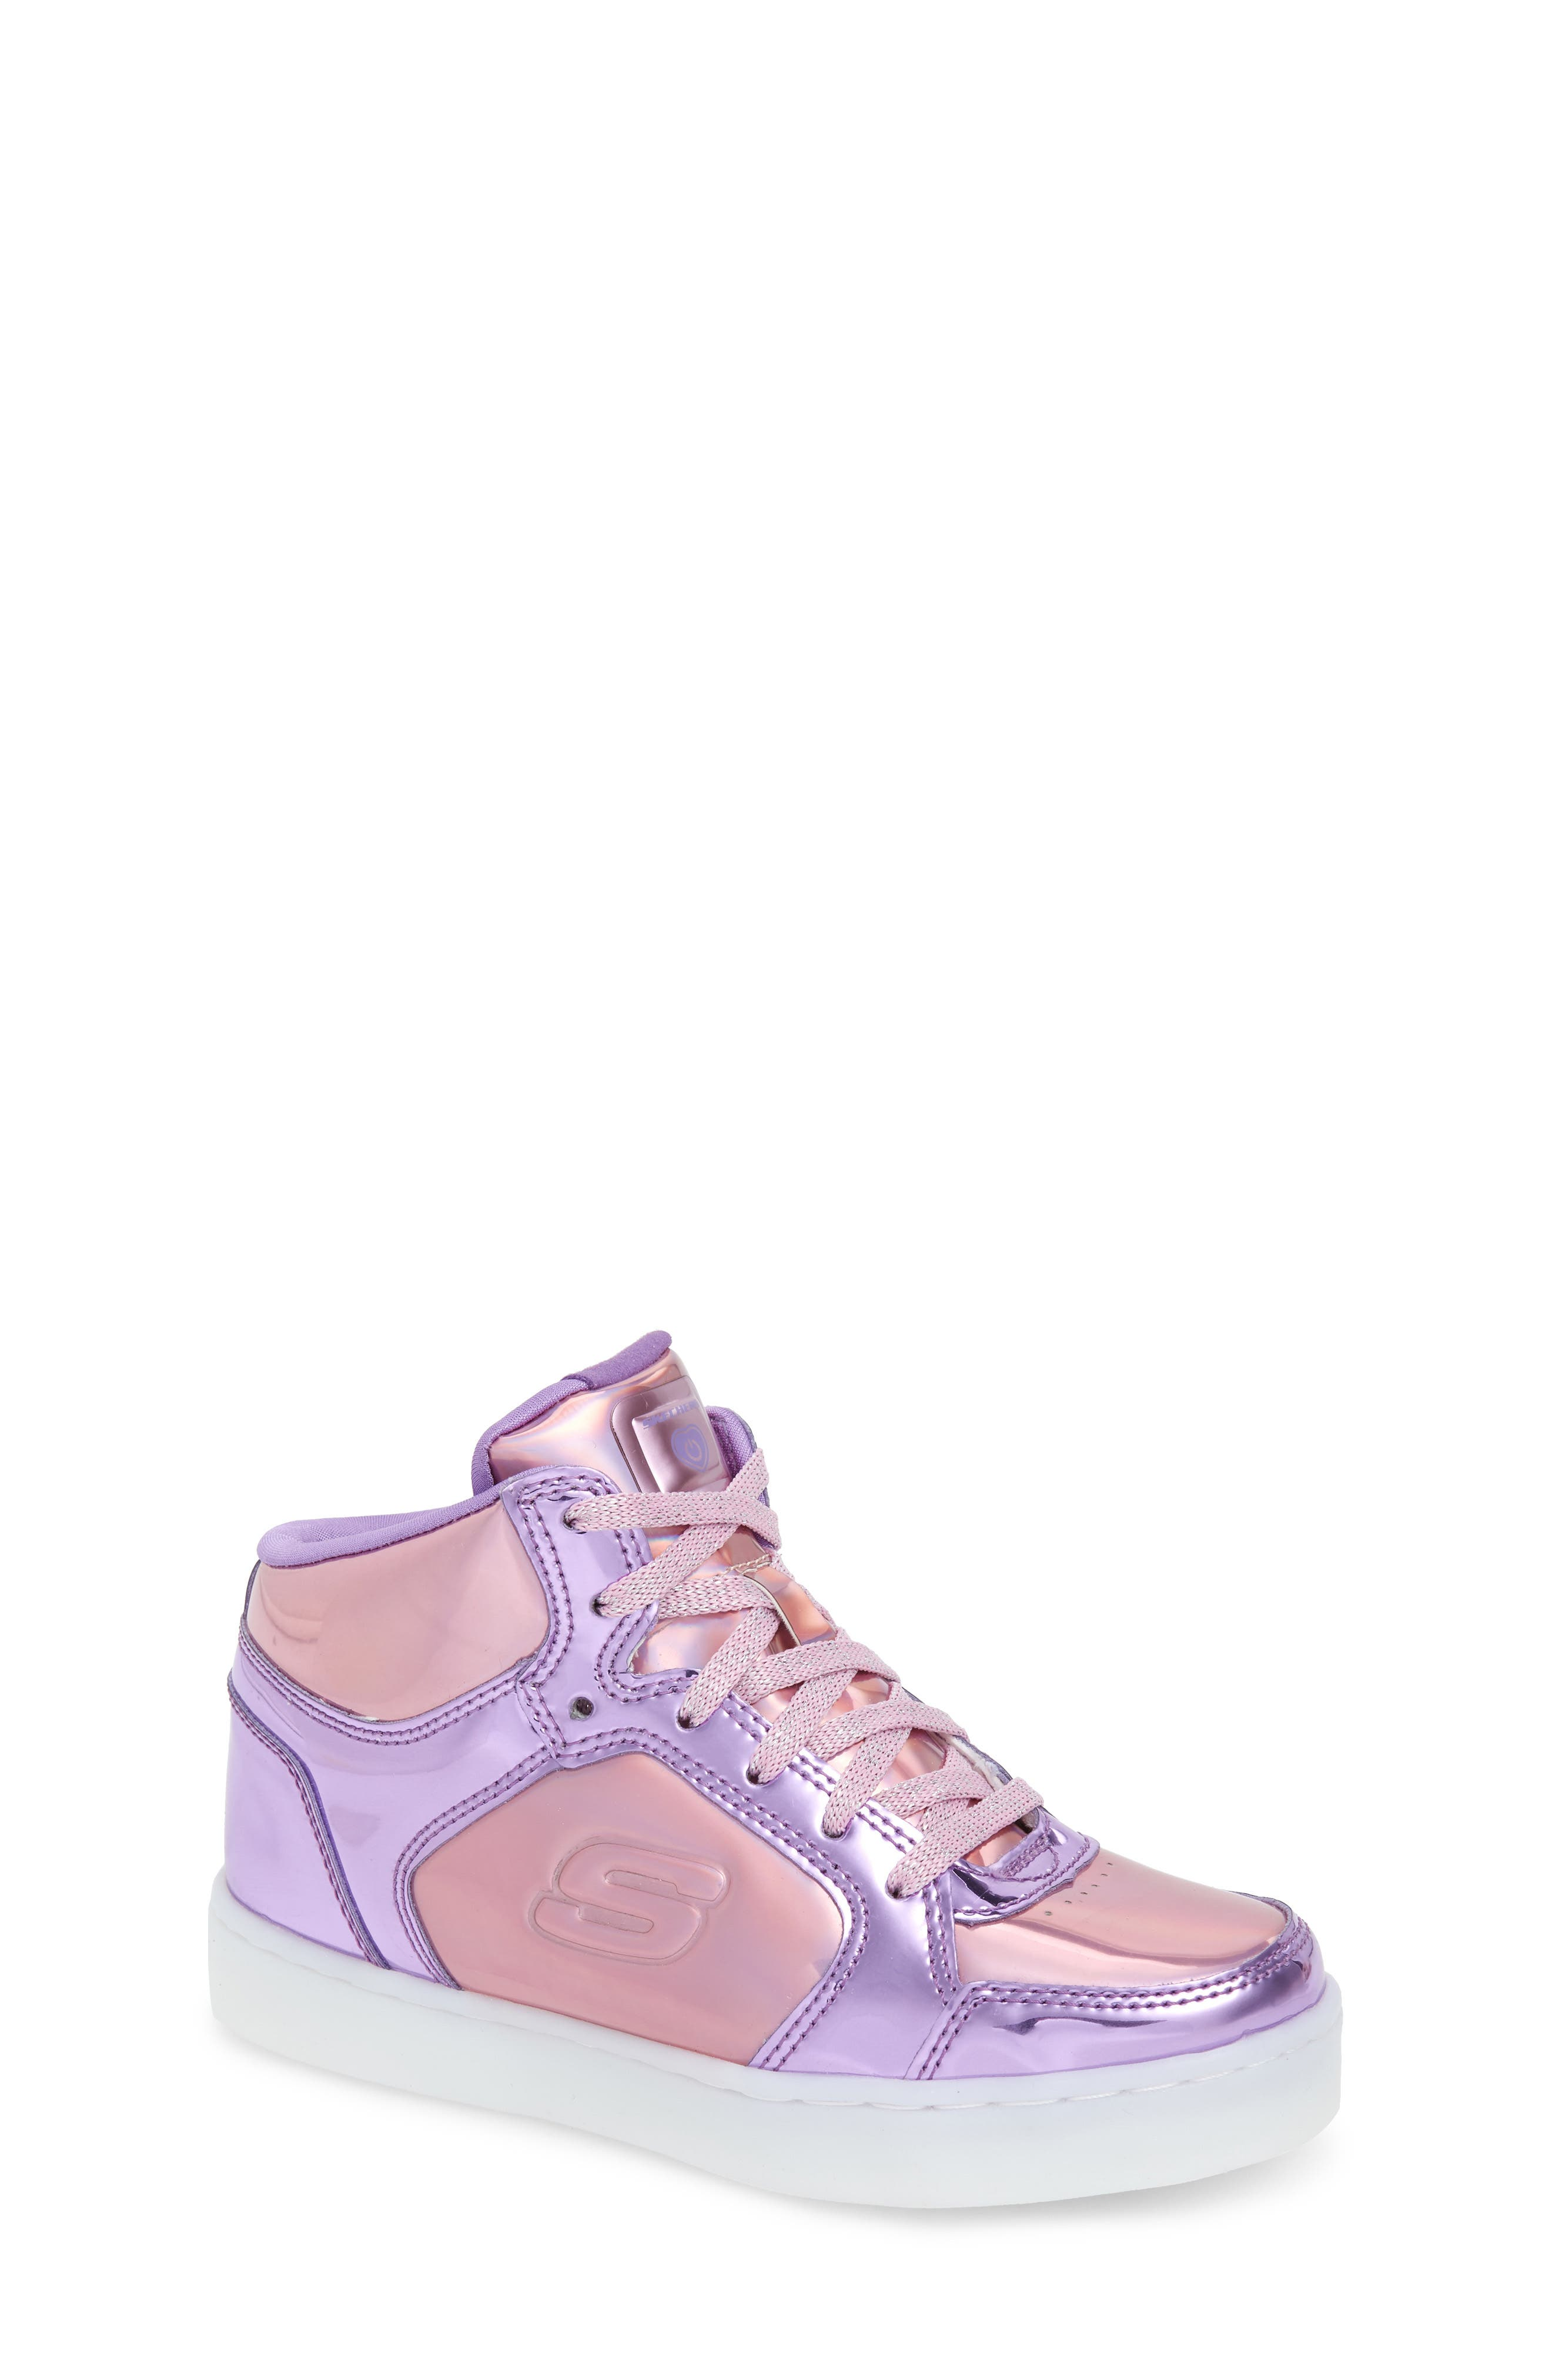 SKECHERS,                             Energy Lights Metallic High Top Sneaker,                             Main thumbnail 1, color,                             650